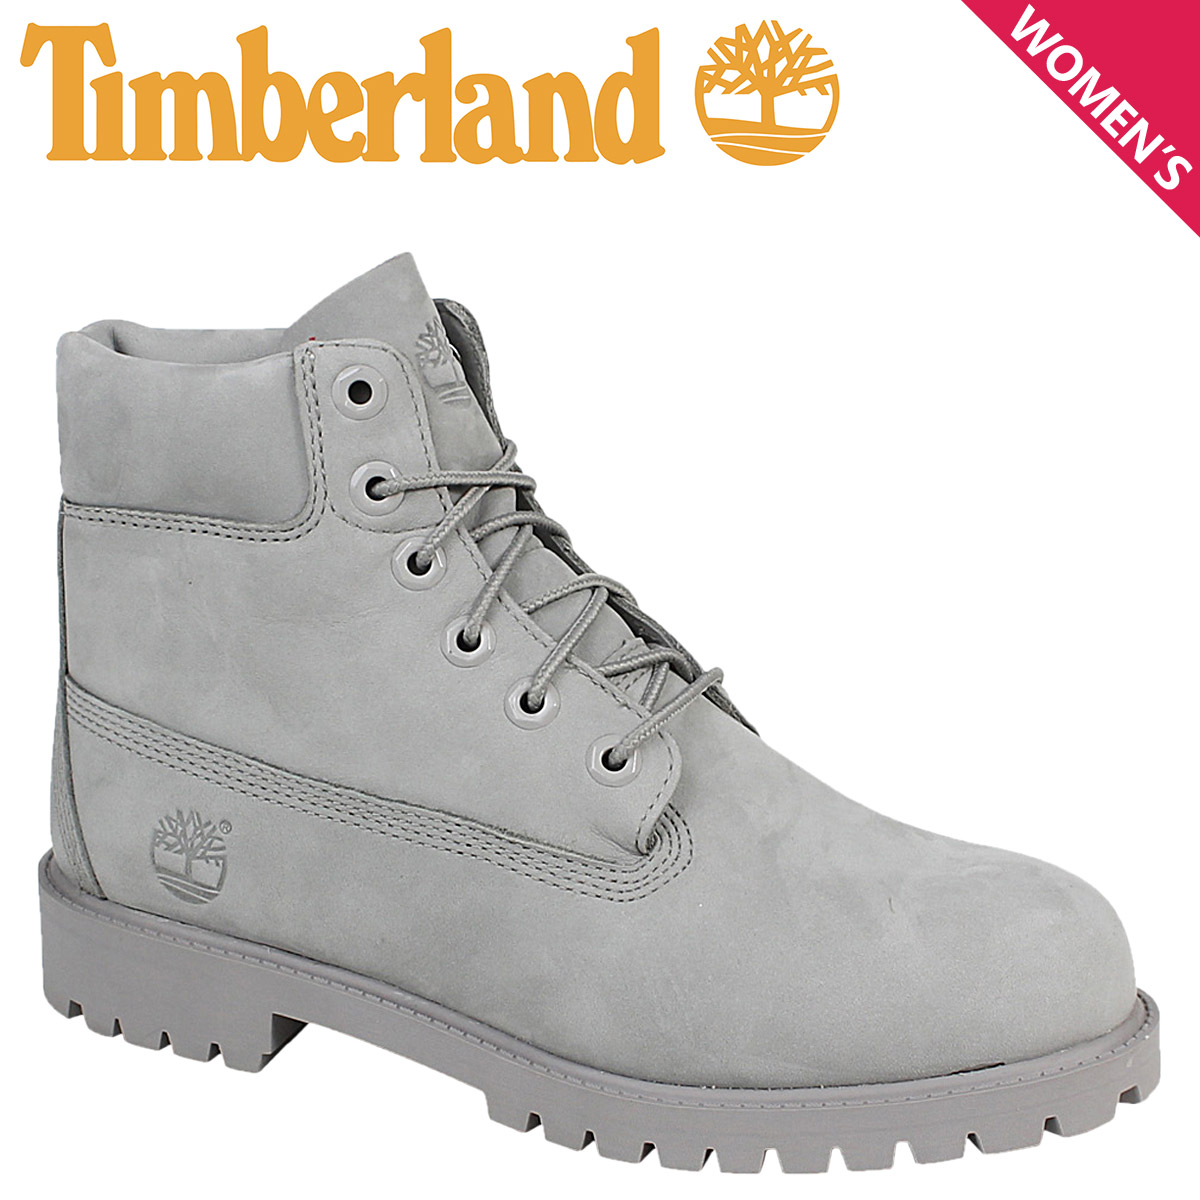 ALLSPORTS  Women s Timberland Timberland 6 INCHI 6 inch premium boots  JUNIOR 6-INCH PREMIUM WATERPROOF BOOTS A172F W wise waterproof grey  faffcaf3a2